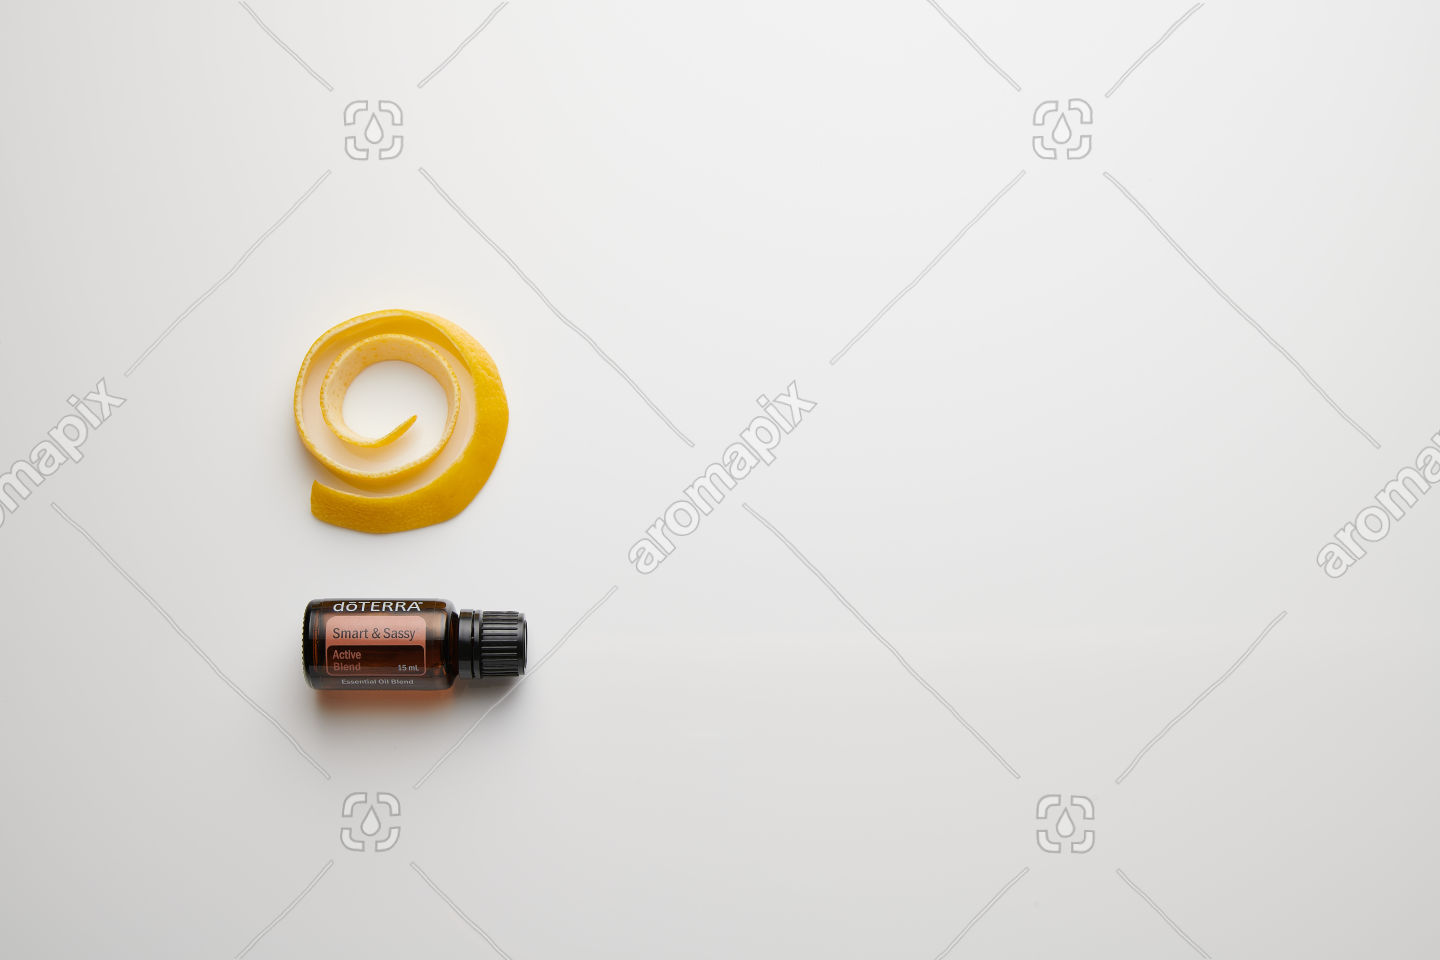 doTERRA Smart and Sassy with lemon peel on white perspex